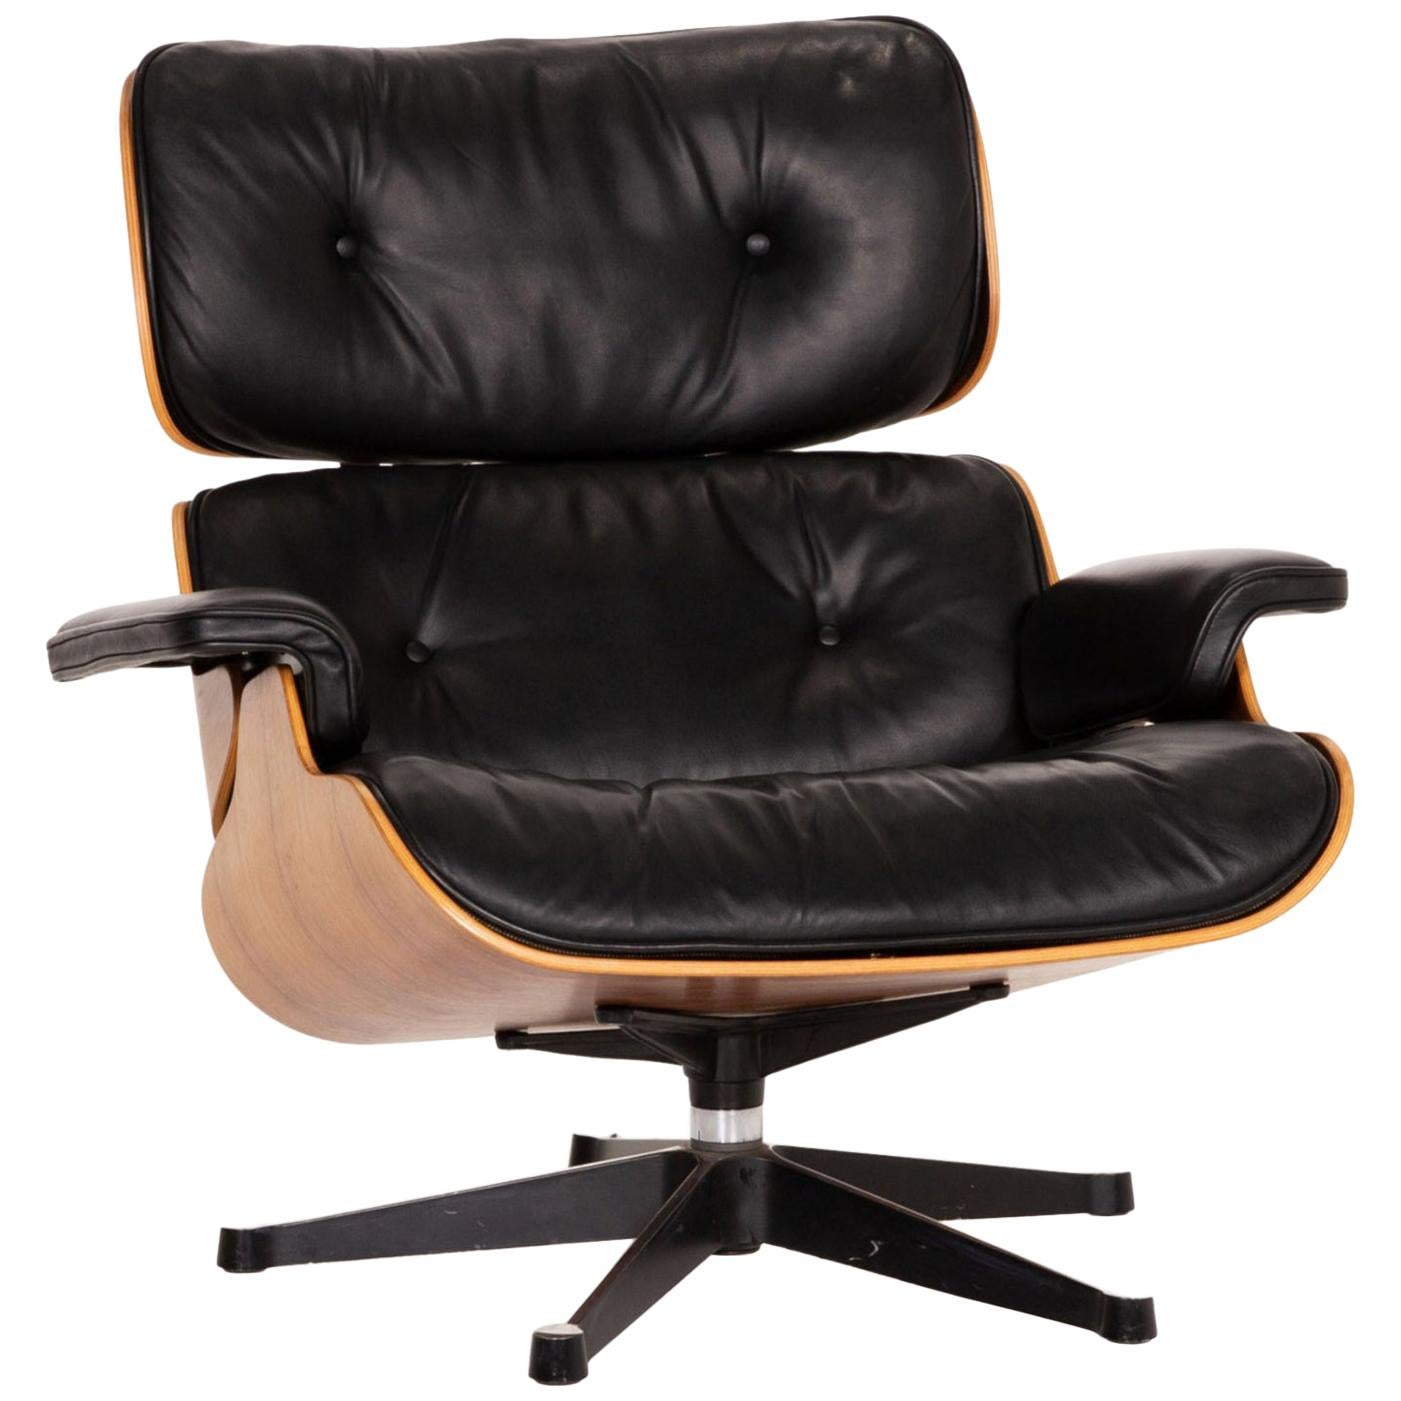 Vitra Eames Lounge Chair Leather Armchair Black Wood